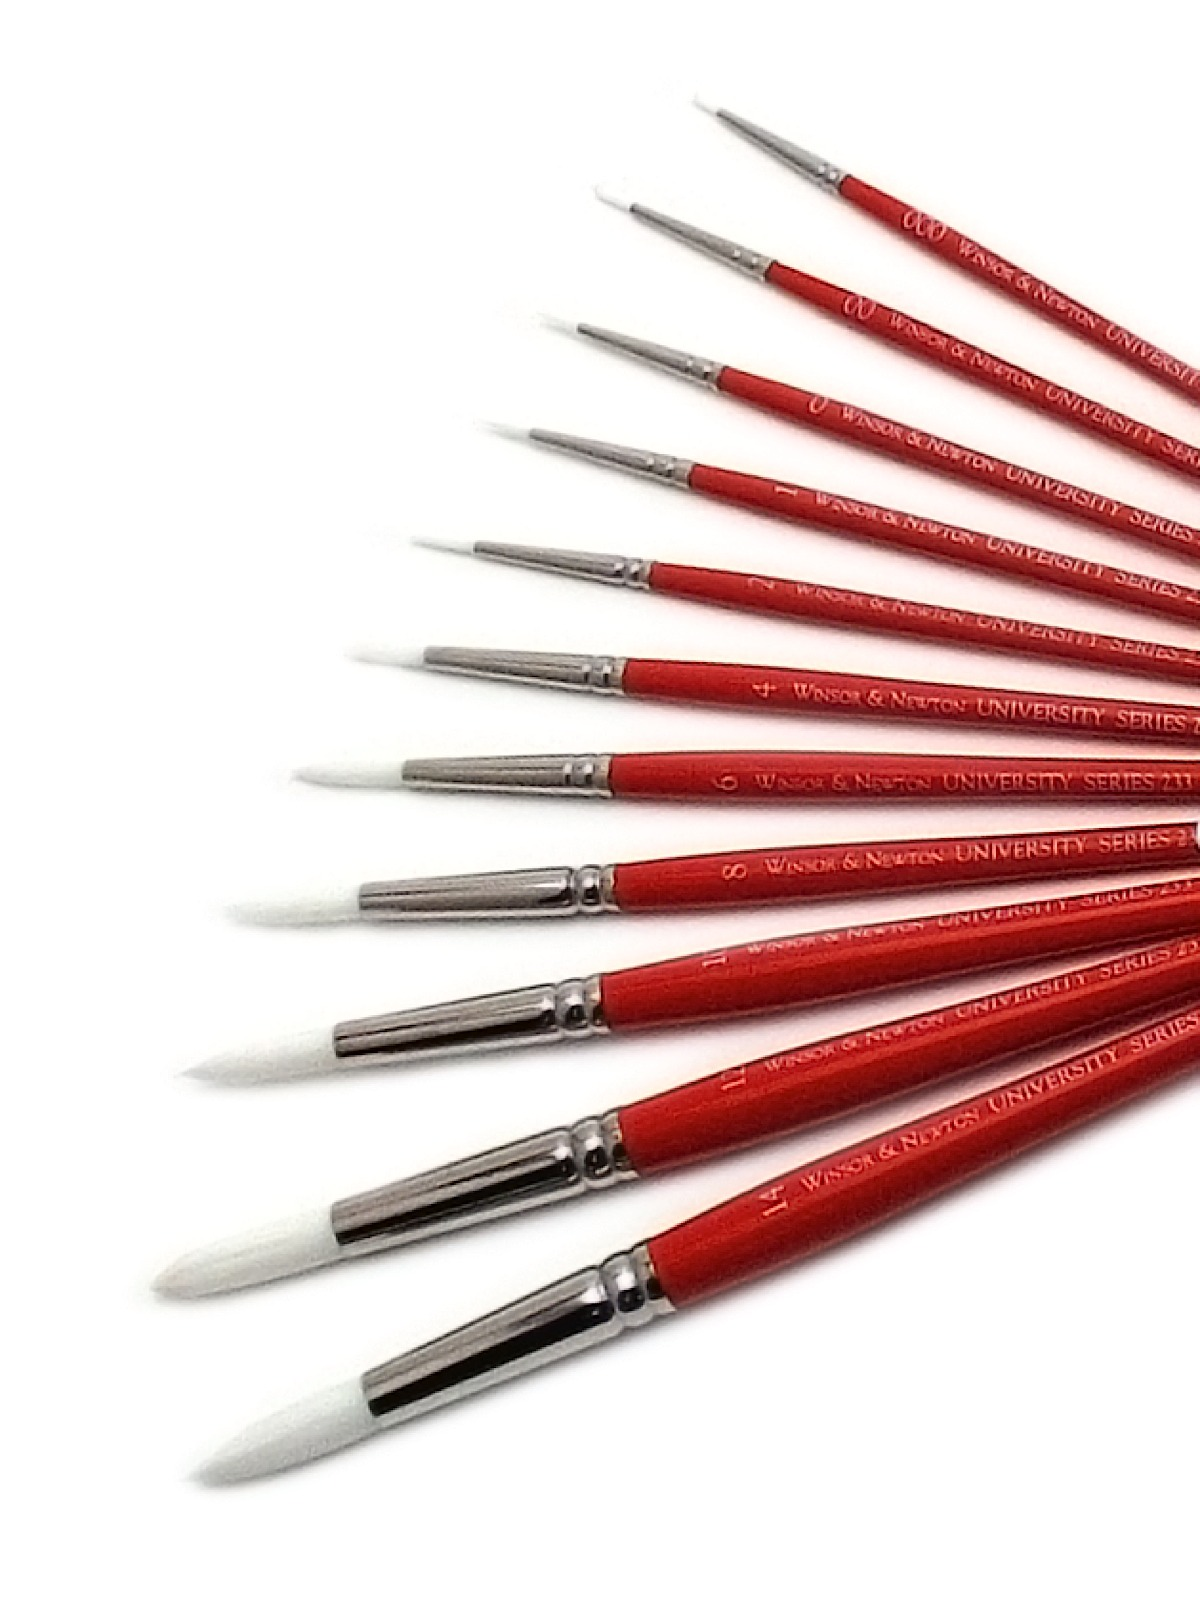 University Series Short Handled Brushes